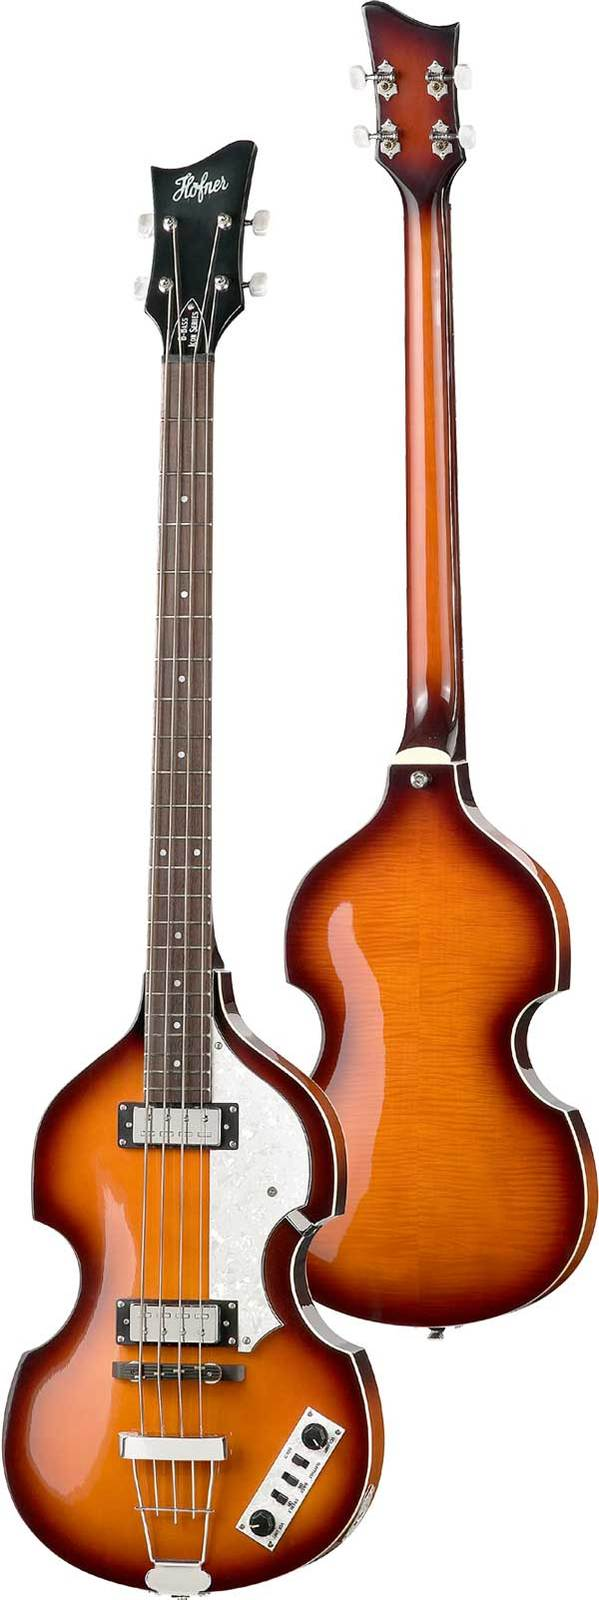 hight resolution of hofner ignition review talkbass com bas93a